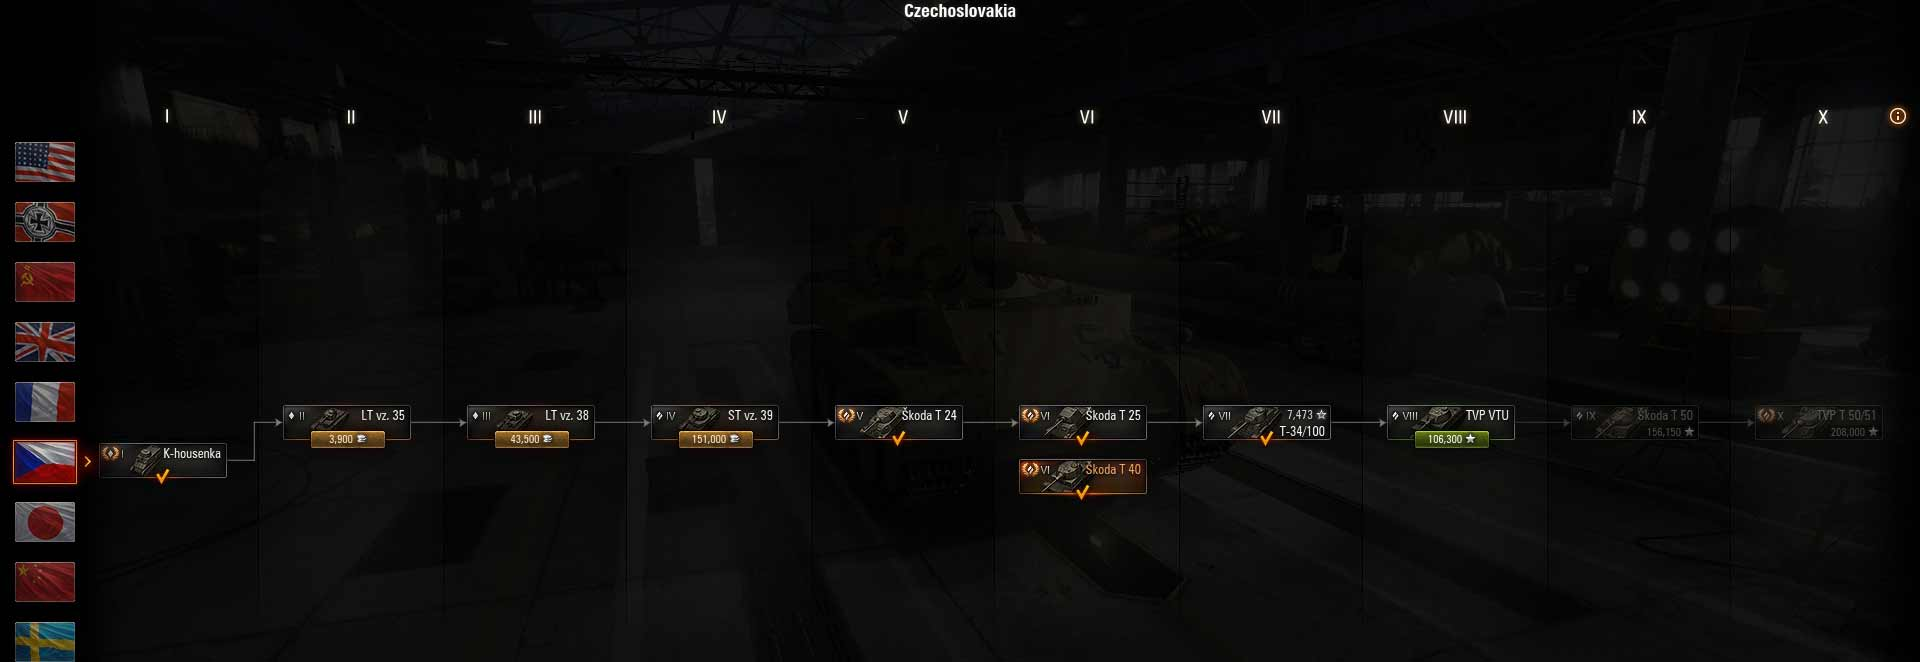 world of tanks tank with best matchmaking